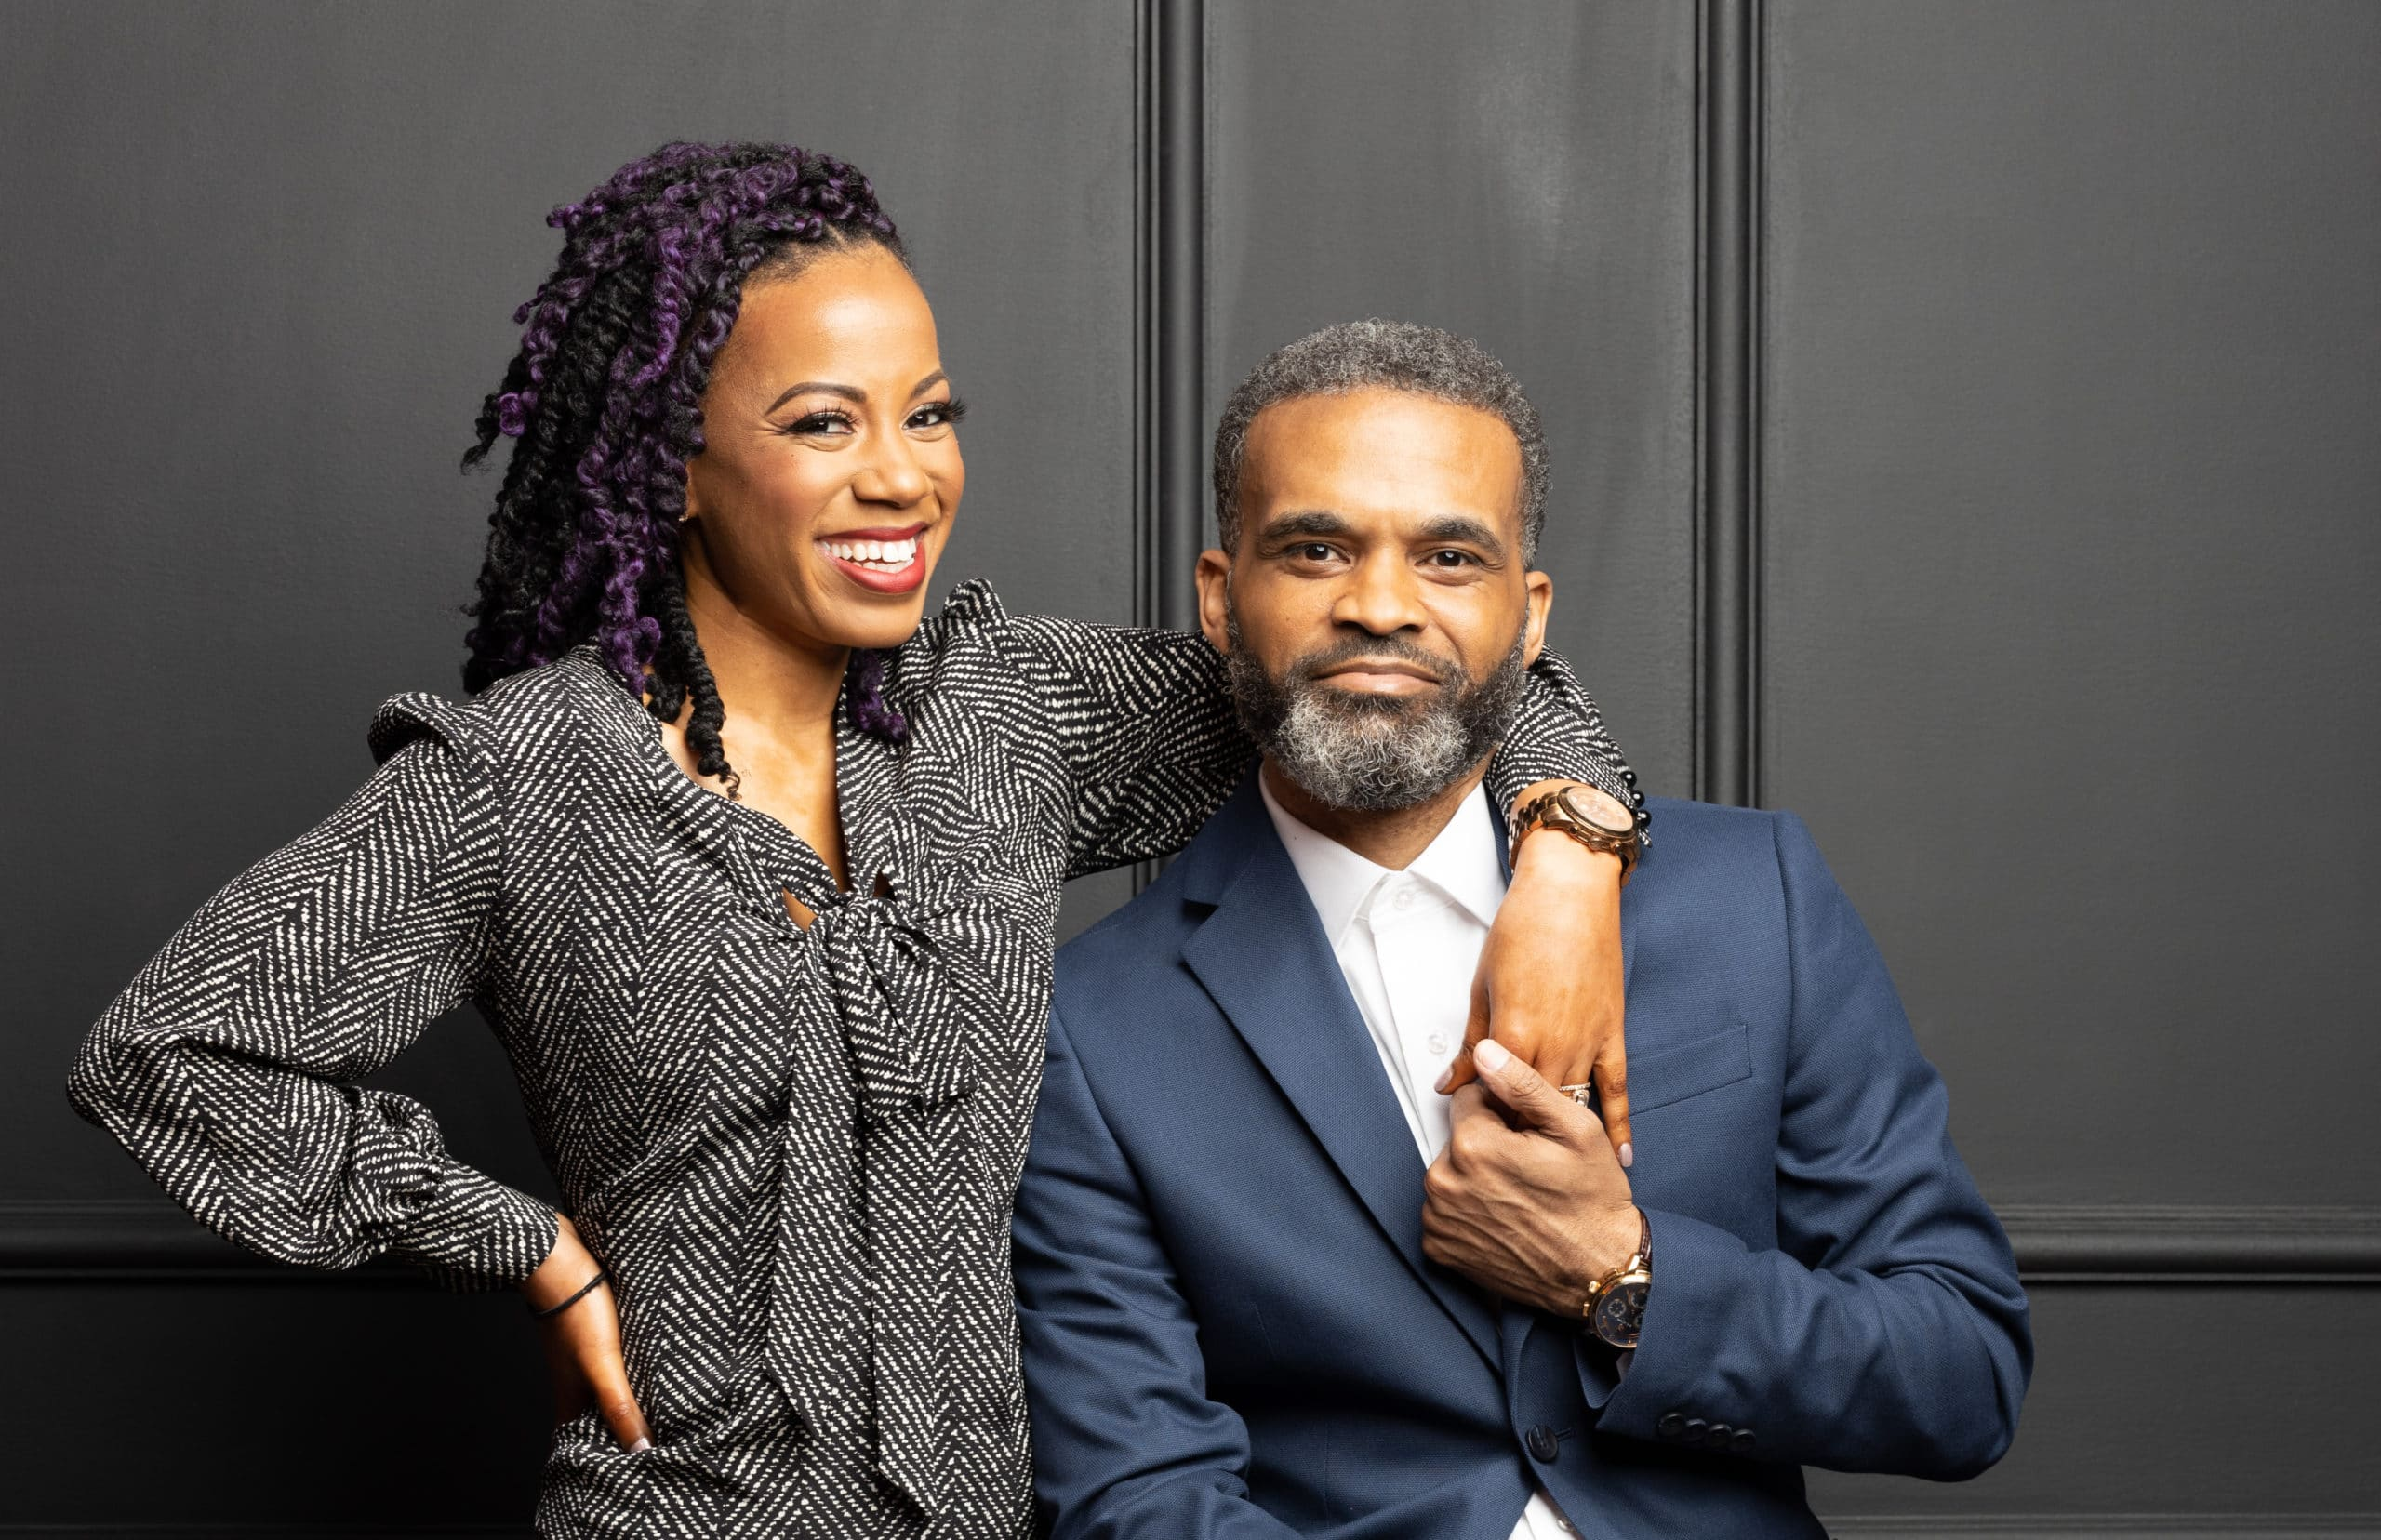 054: Marriage & Entrepreneurship: How to Properly Engage Your Spouse in Your Business